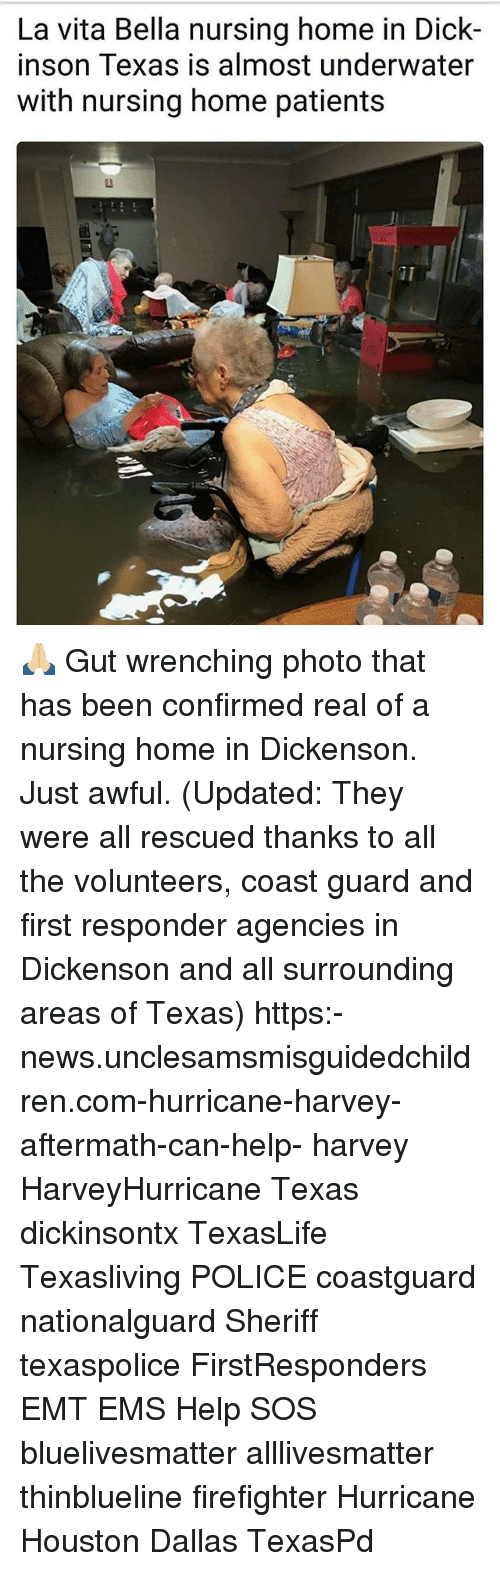 All Lives Matter, Memes, and News: La vita Bella nursing home in Dick-  inson Texas is almost underwater  with nursing home patients 🙏🏼 Gut wrenching photo that has been confirmed real of a nursing home in Dickenson. Just awful. (Updated: They were all rescued thanks to all the volunteers, coast guard and first responder agencies in Dickenson and all surrounding areas of Texas) https:-news.unclesamsmisguidedchildren.com-hurricane-harvey-aftermath-can-help- harvey HarveyHurricane Texas dickinsontx TexasLife Texasliving POLICE coastguard nationalguard Sheriff texaspolice FirstResponders EMT EMS Help SOS bluelivesmatter alllivesmatter thinblueline firefighter Hurricane Houston Dallas TexasPd